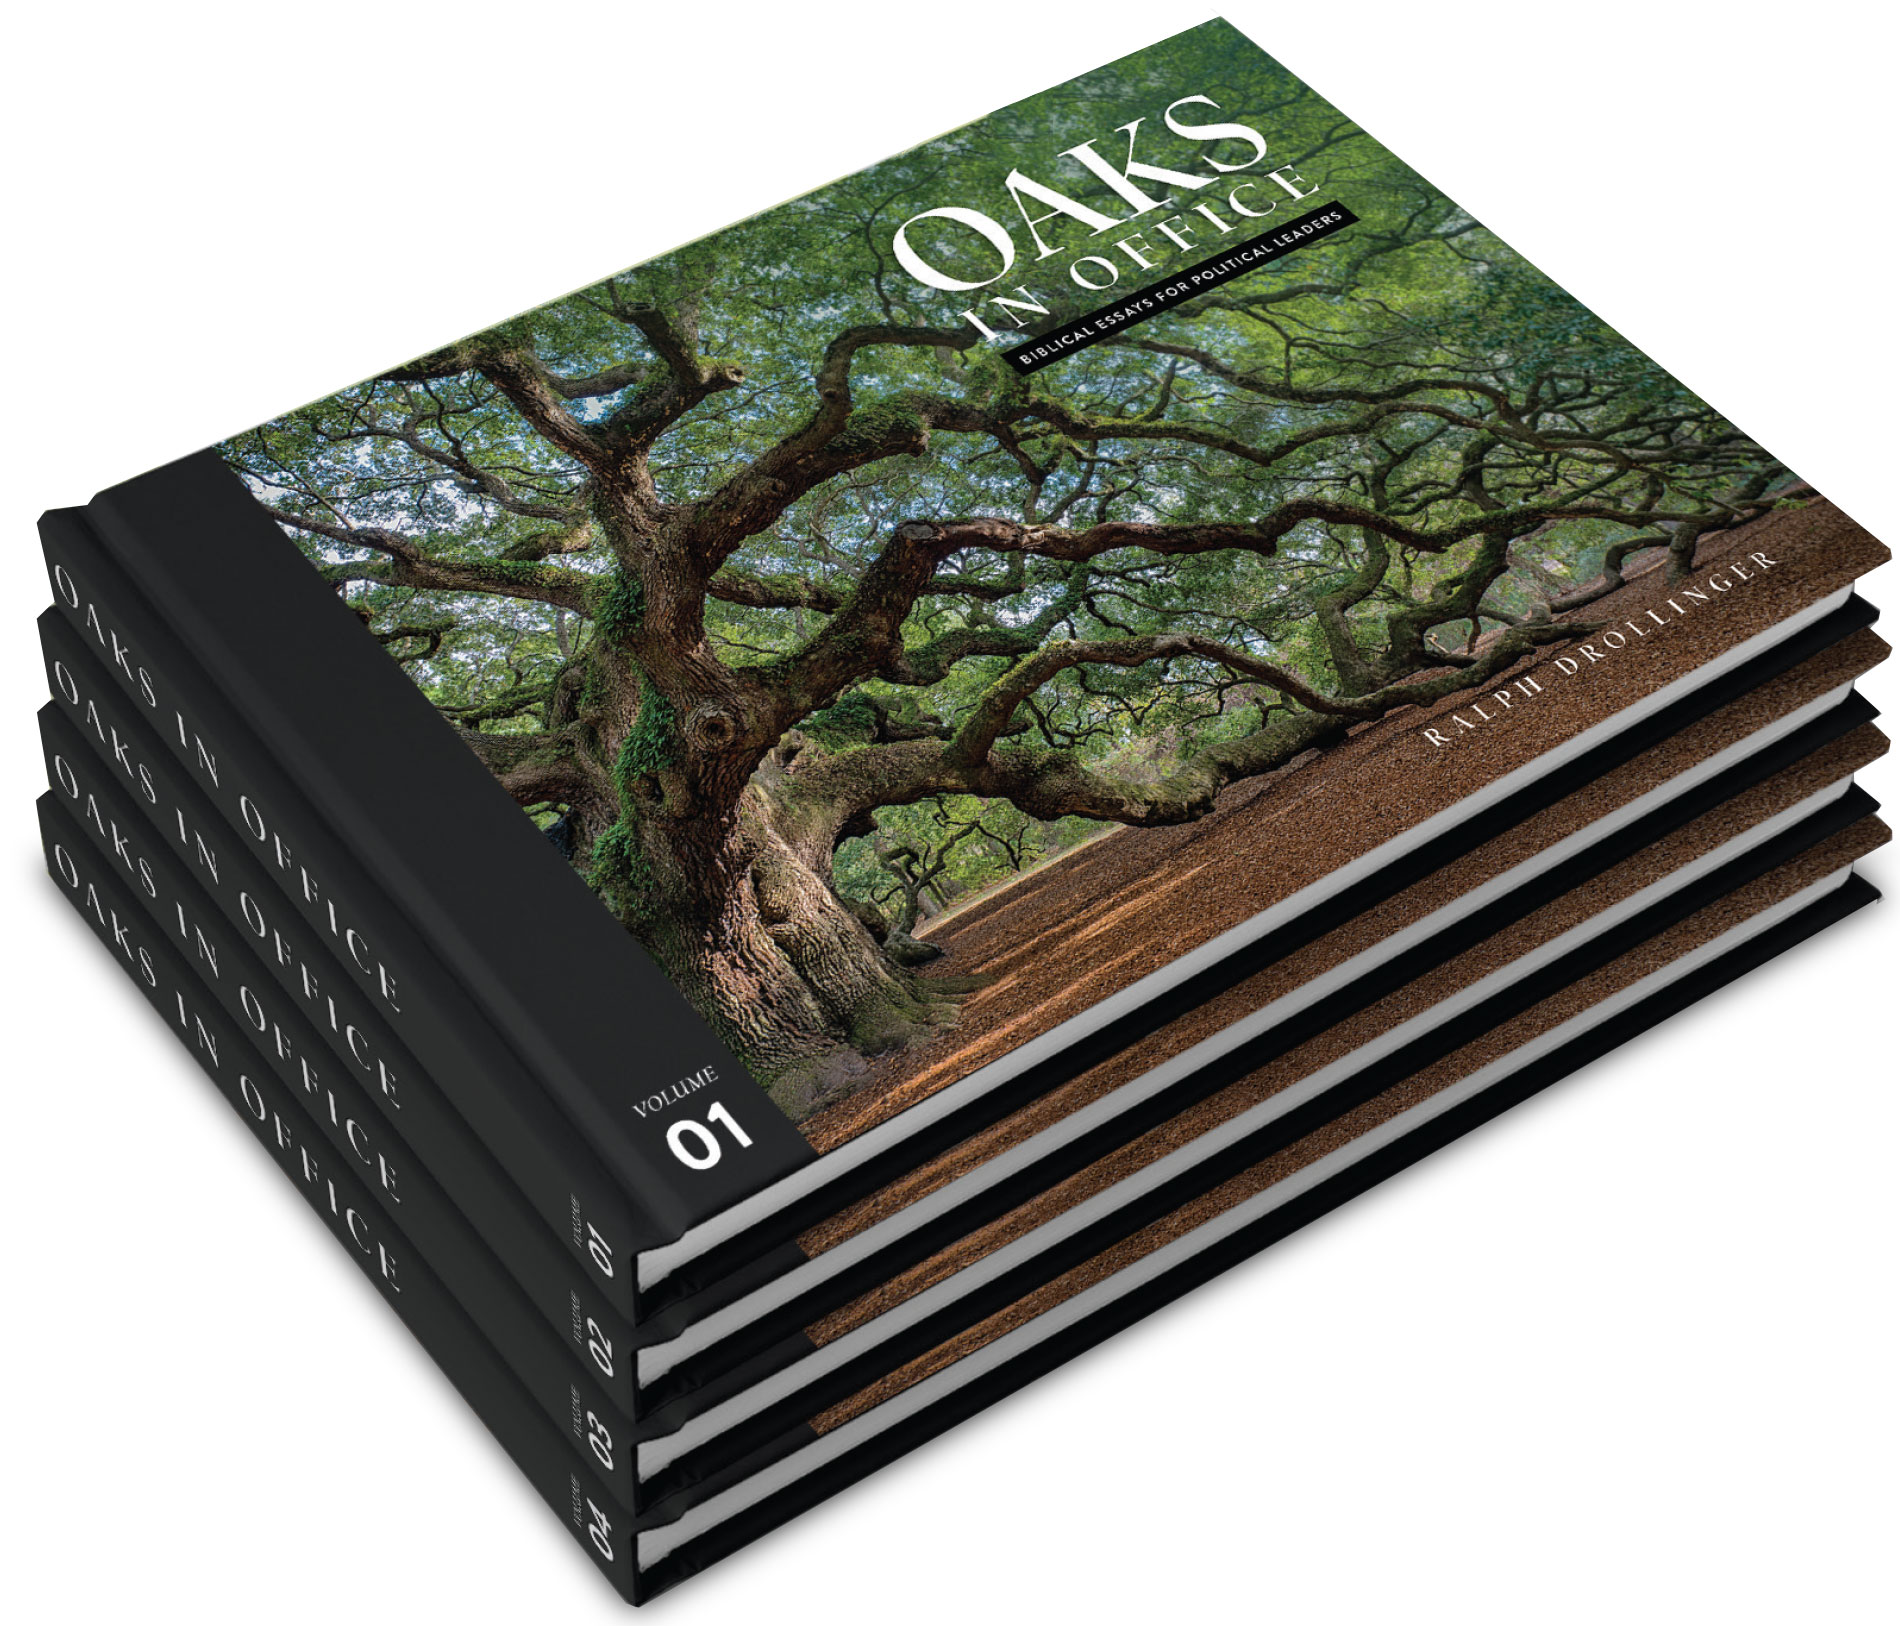 Oaks in Office: Biblical Essays for Political Leaders (Shipping in July)